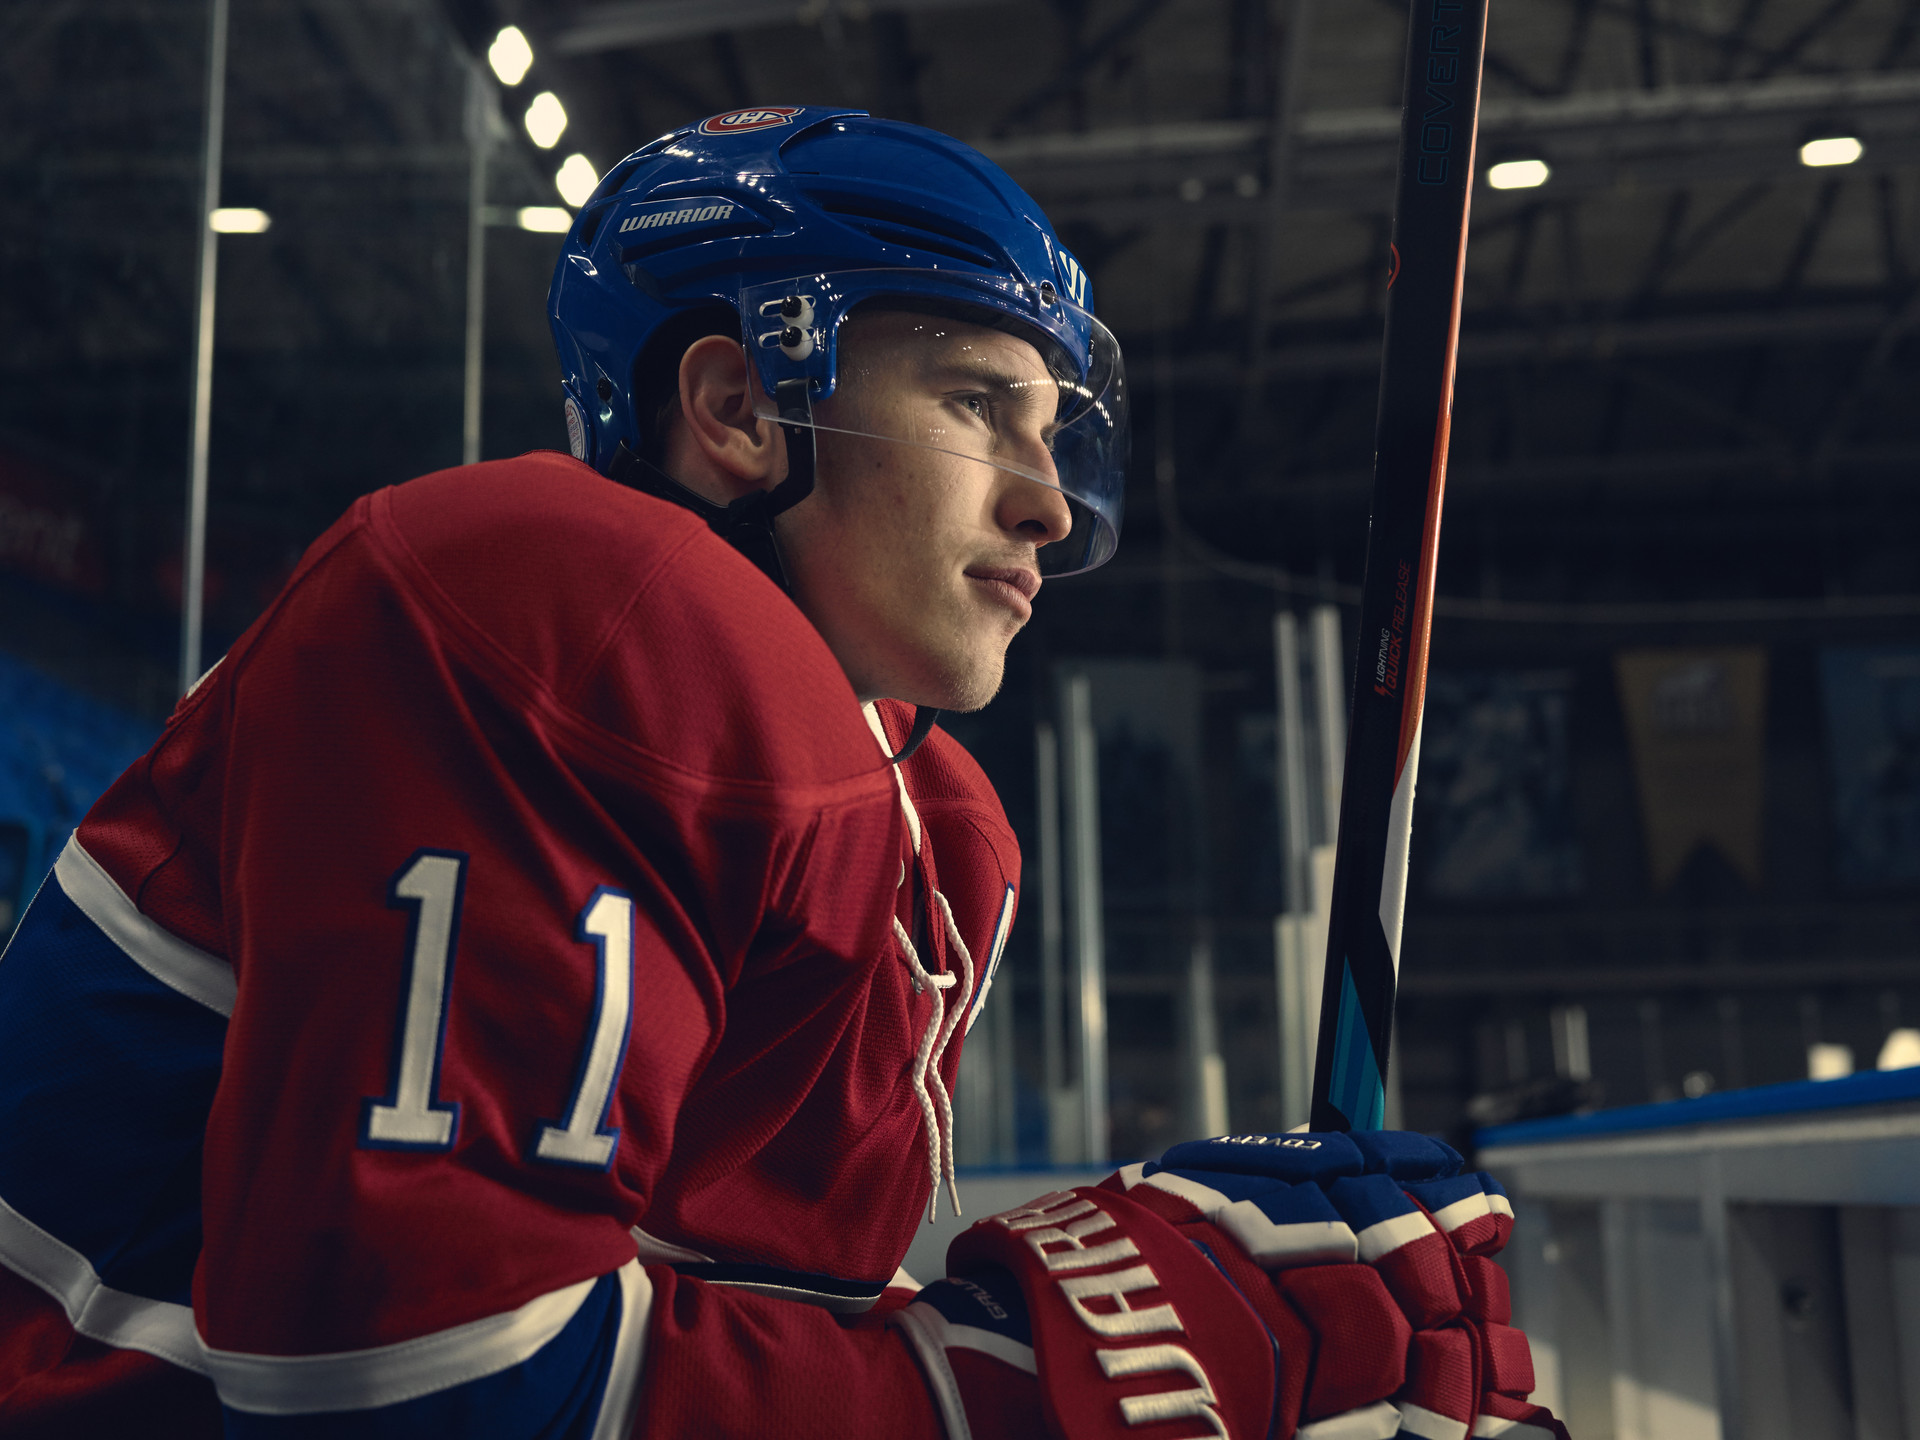 Brendan-Gallagher_web_size1.JPG